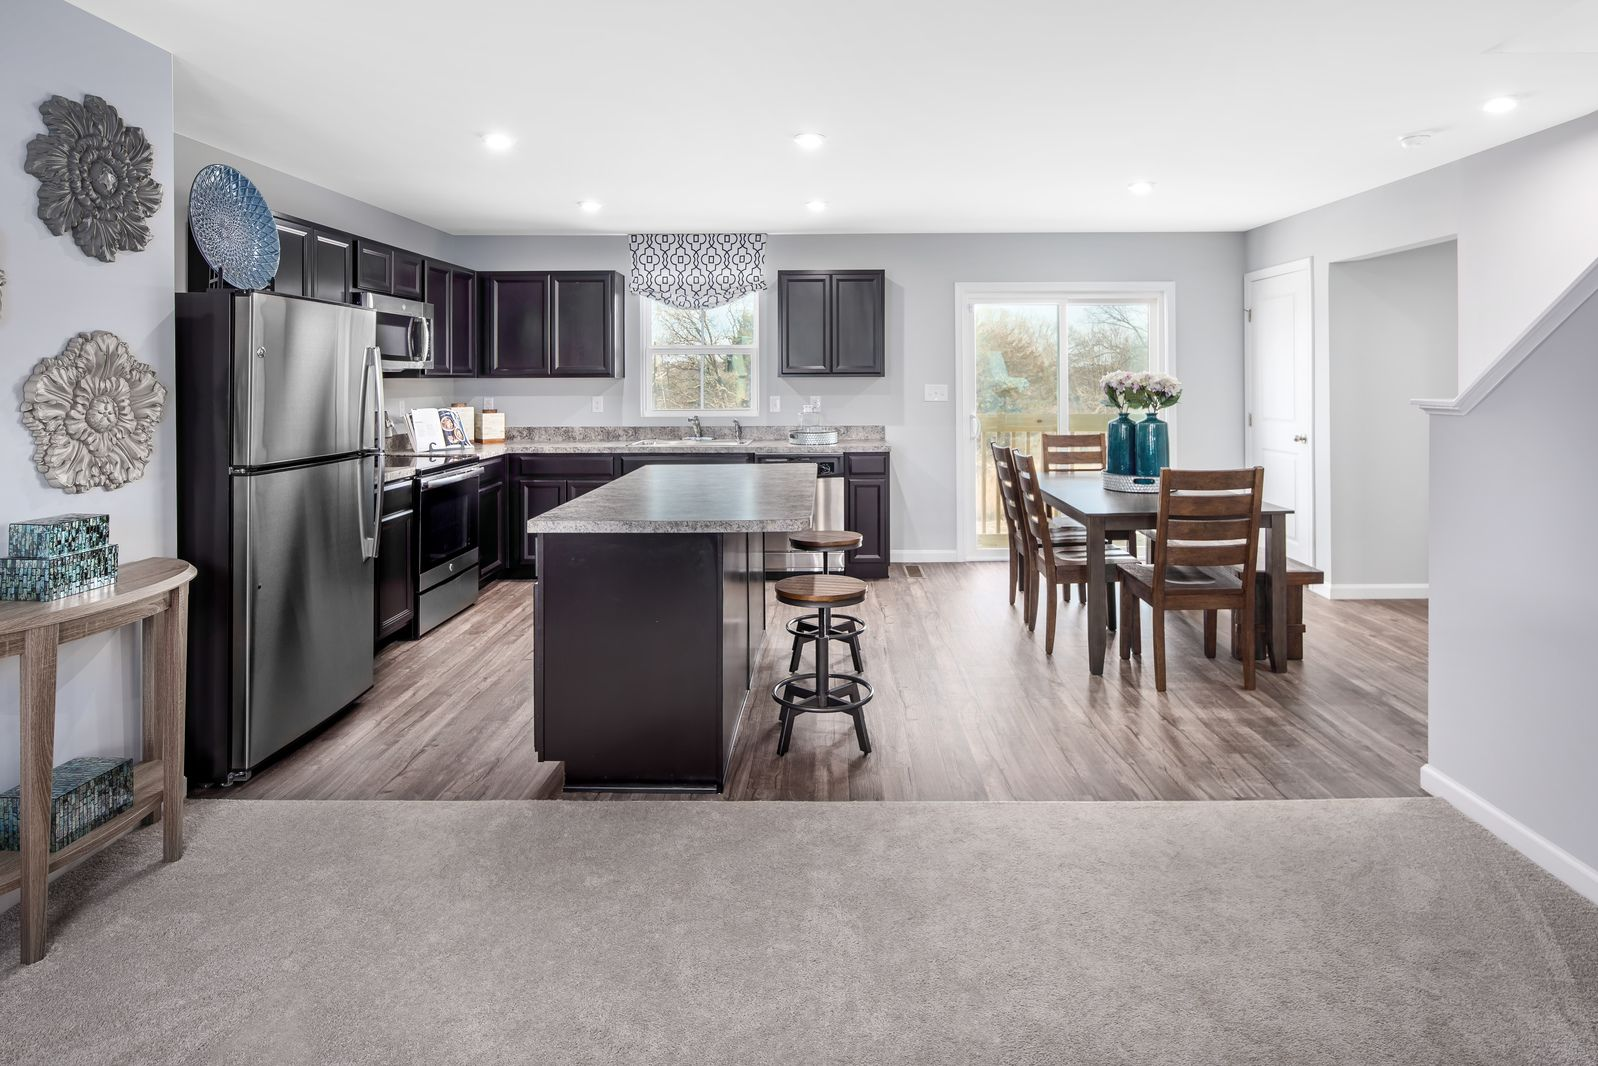 Kitchen-in-Plan 1918-at-Enclave at Heartland Crossing-in-Camby